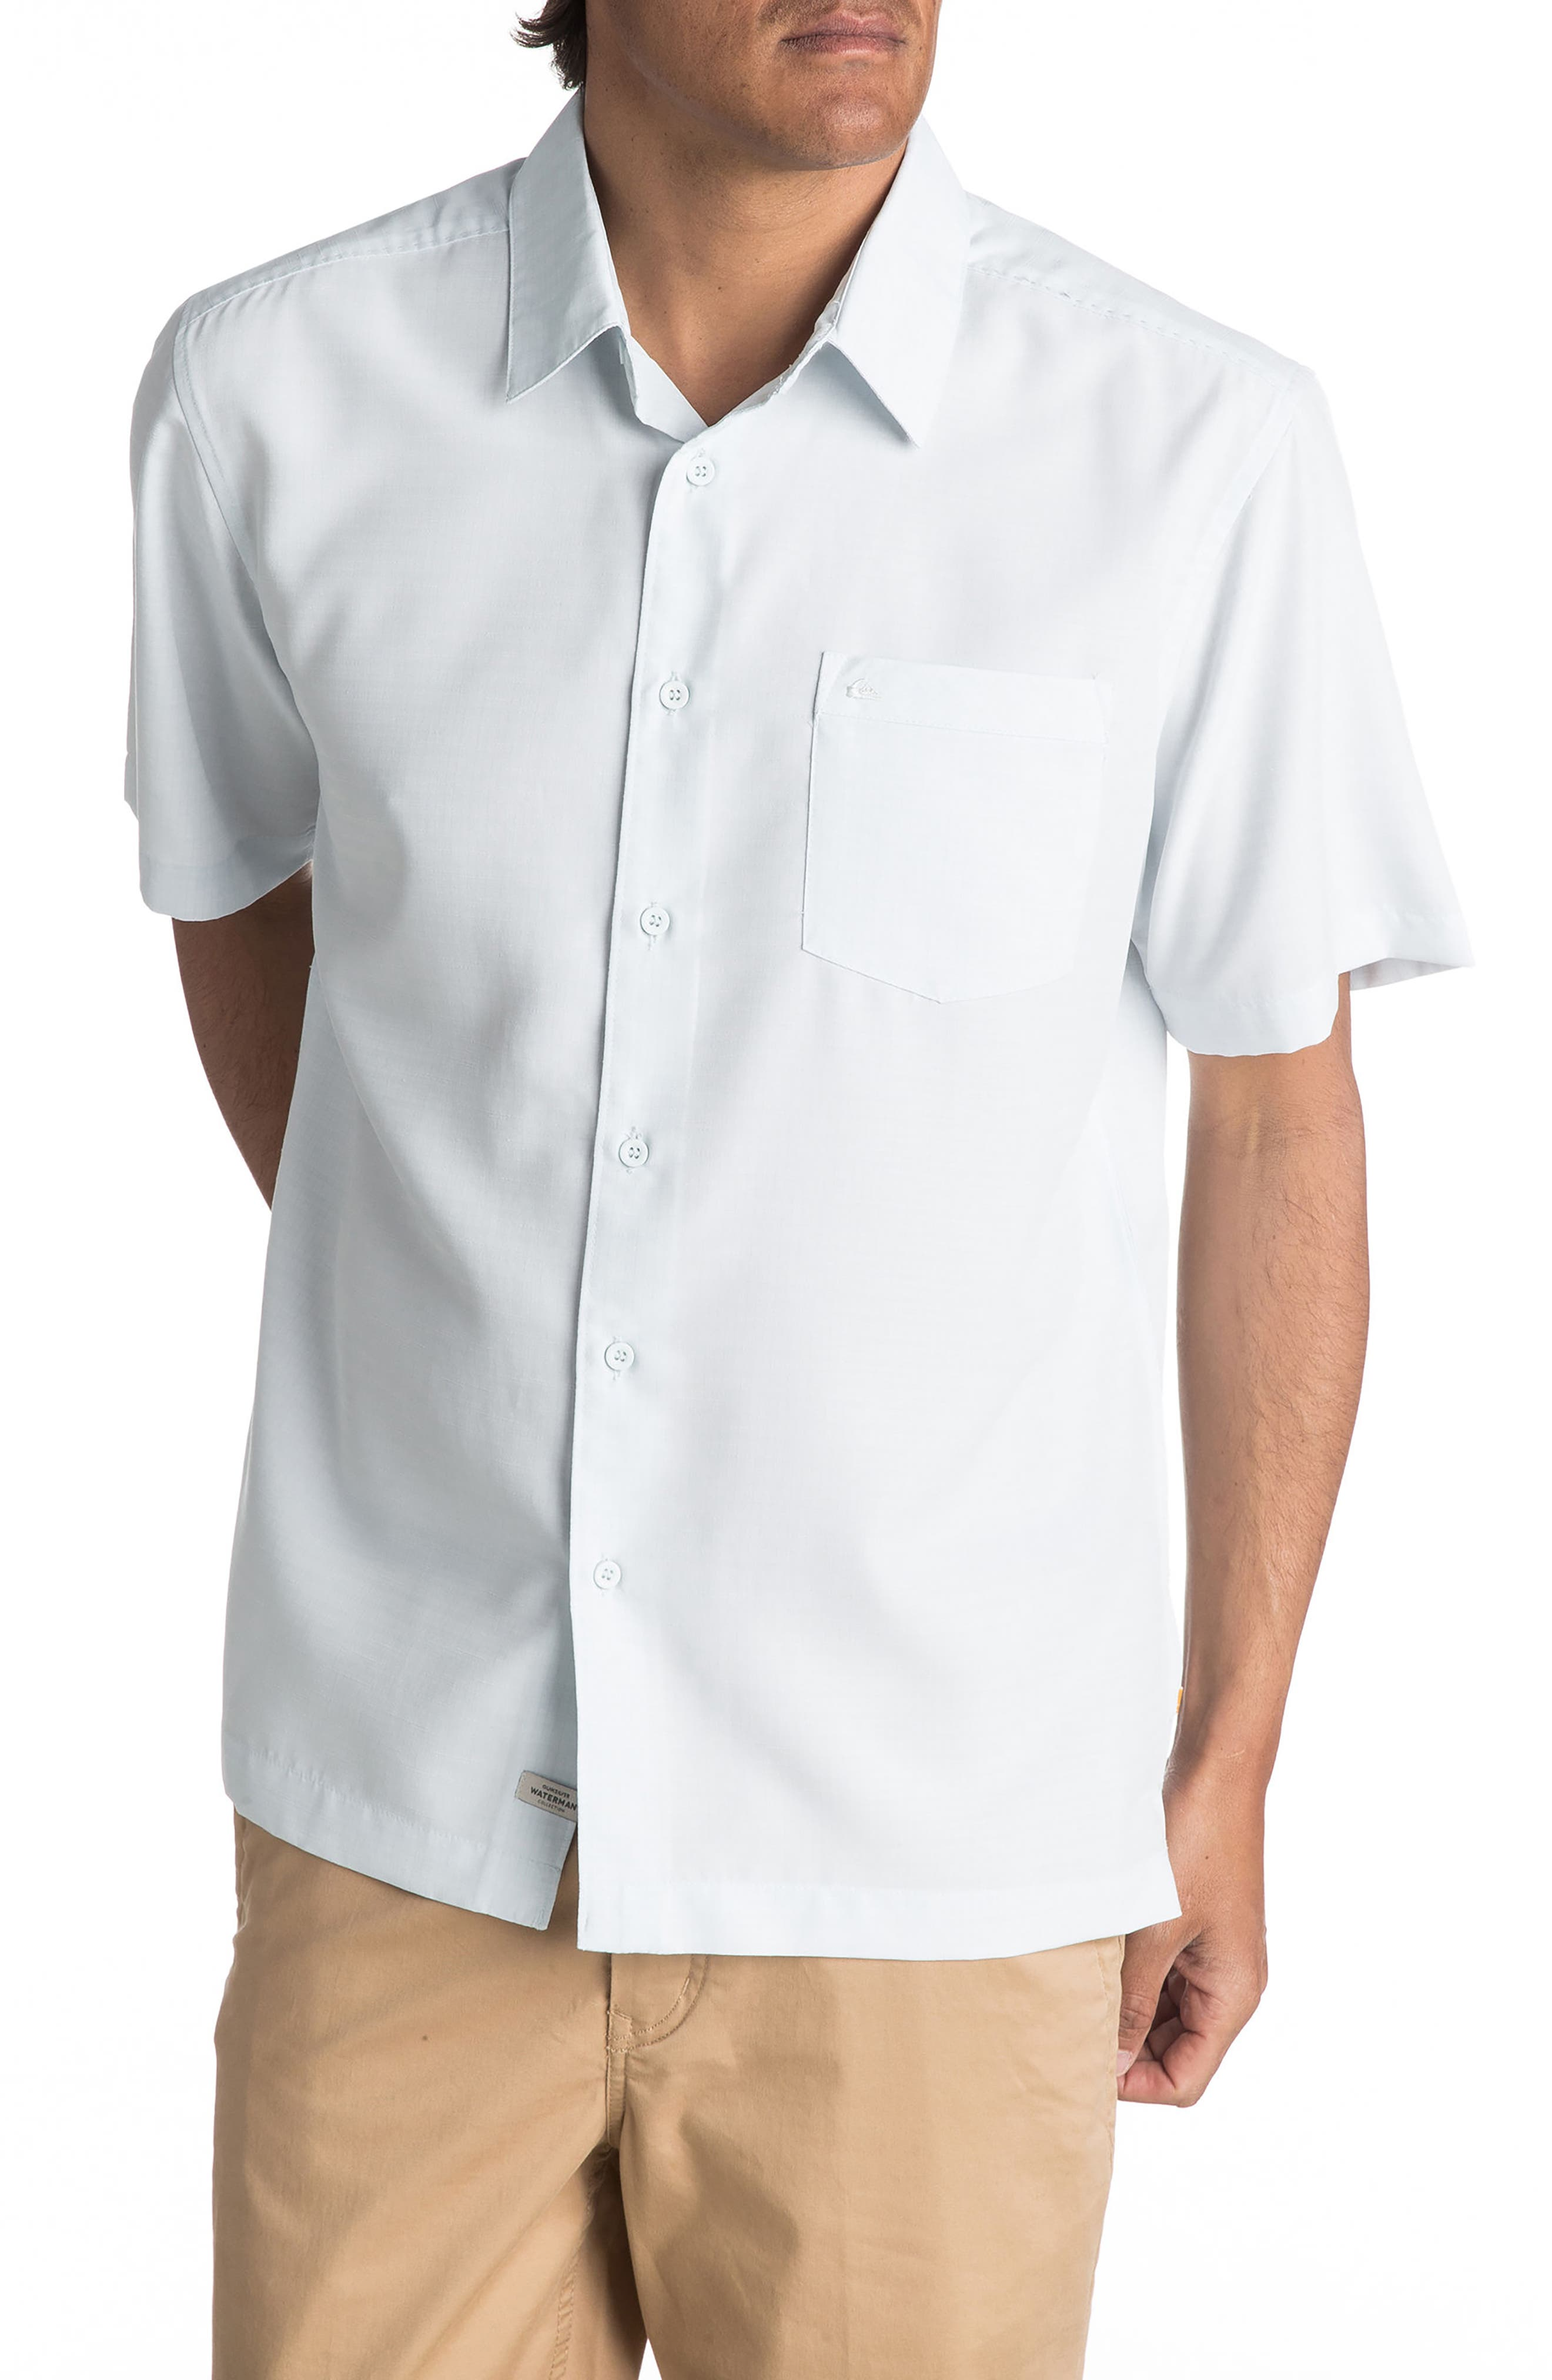 Quiksilver Waterman Collection 'Centinela 4' Short Sleeve Sport Shirt